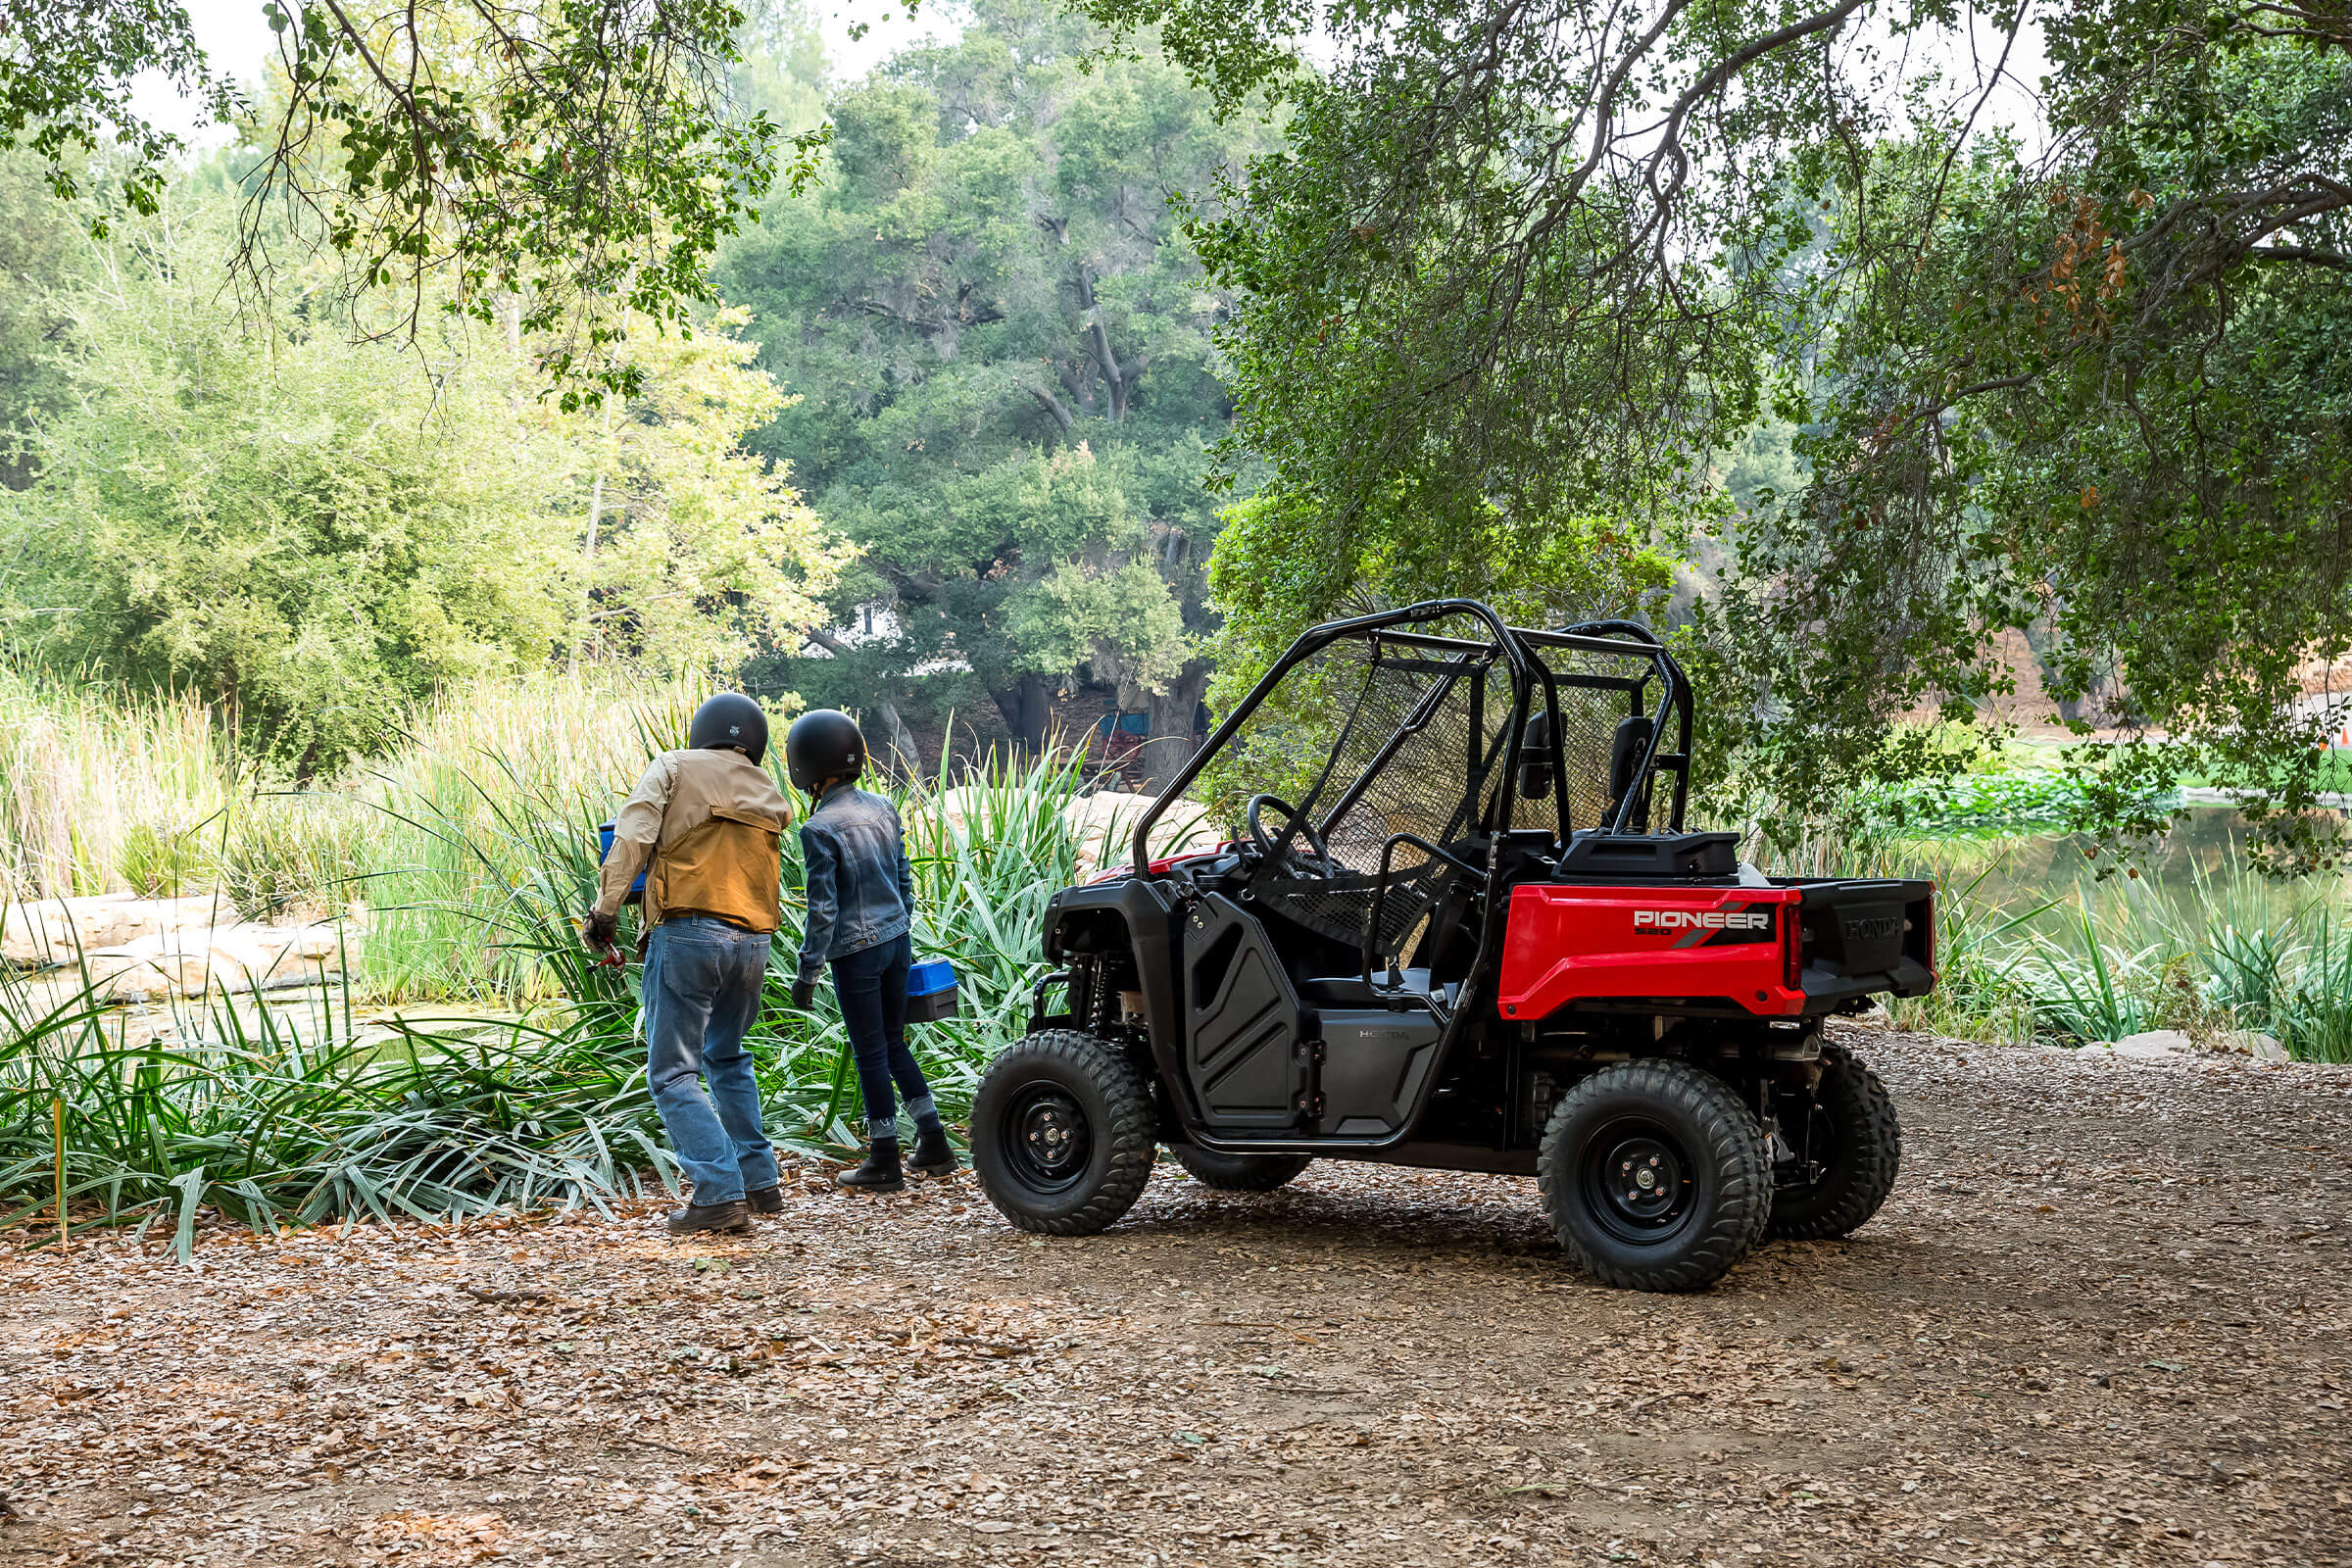 2021 Honda Pioneer 520 in Sanford, North Carolina - Photo 2